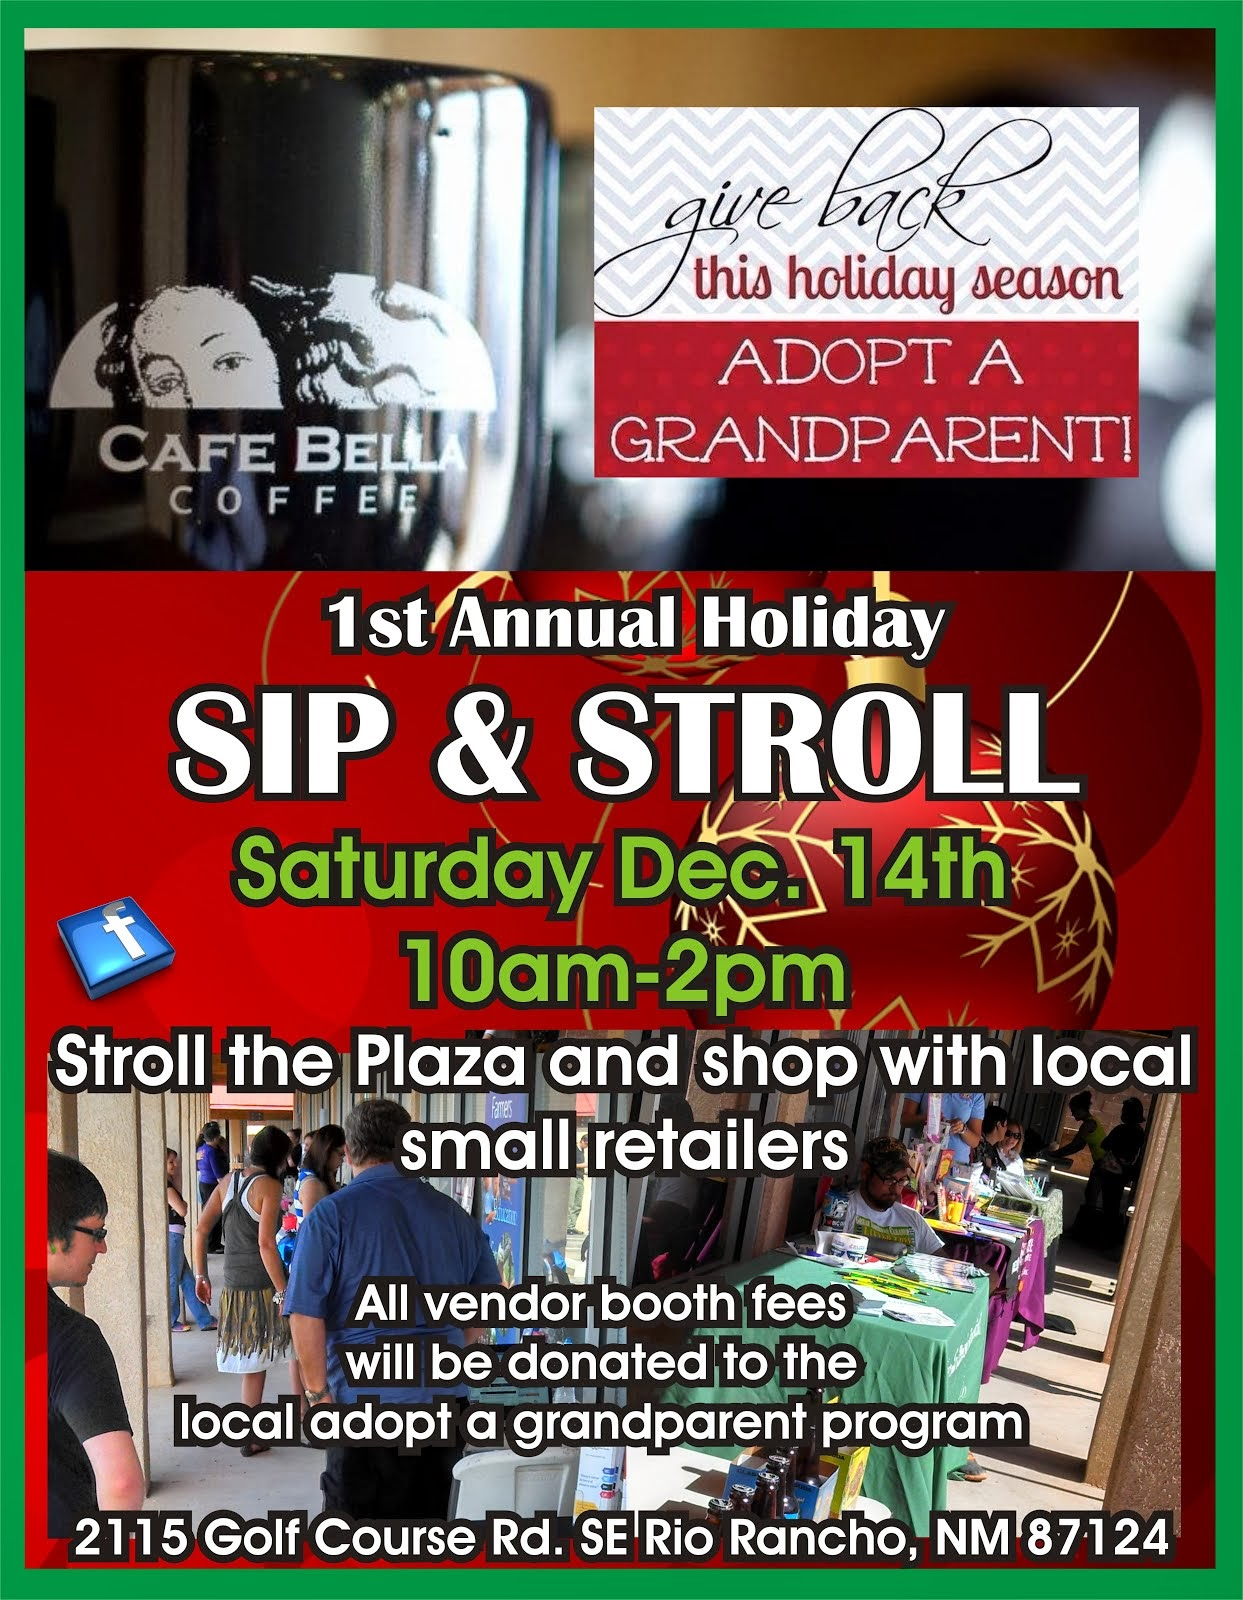 Sip & Stroll Sat. Dec 14th!